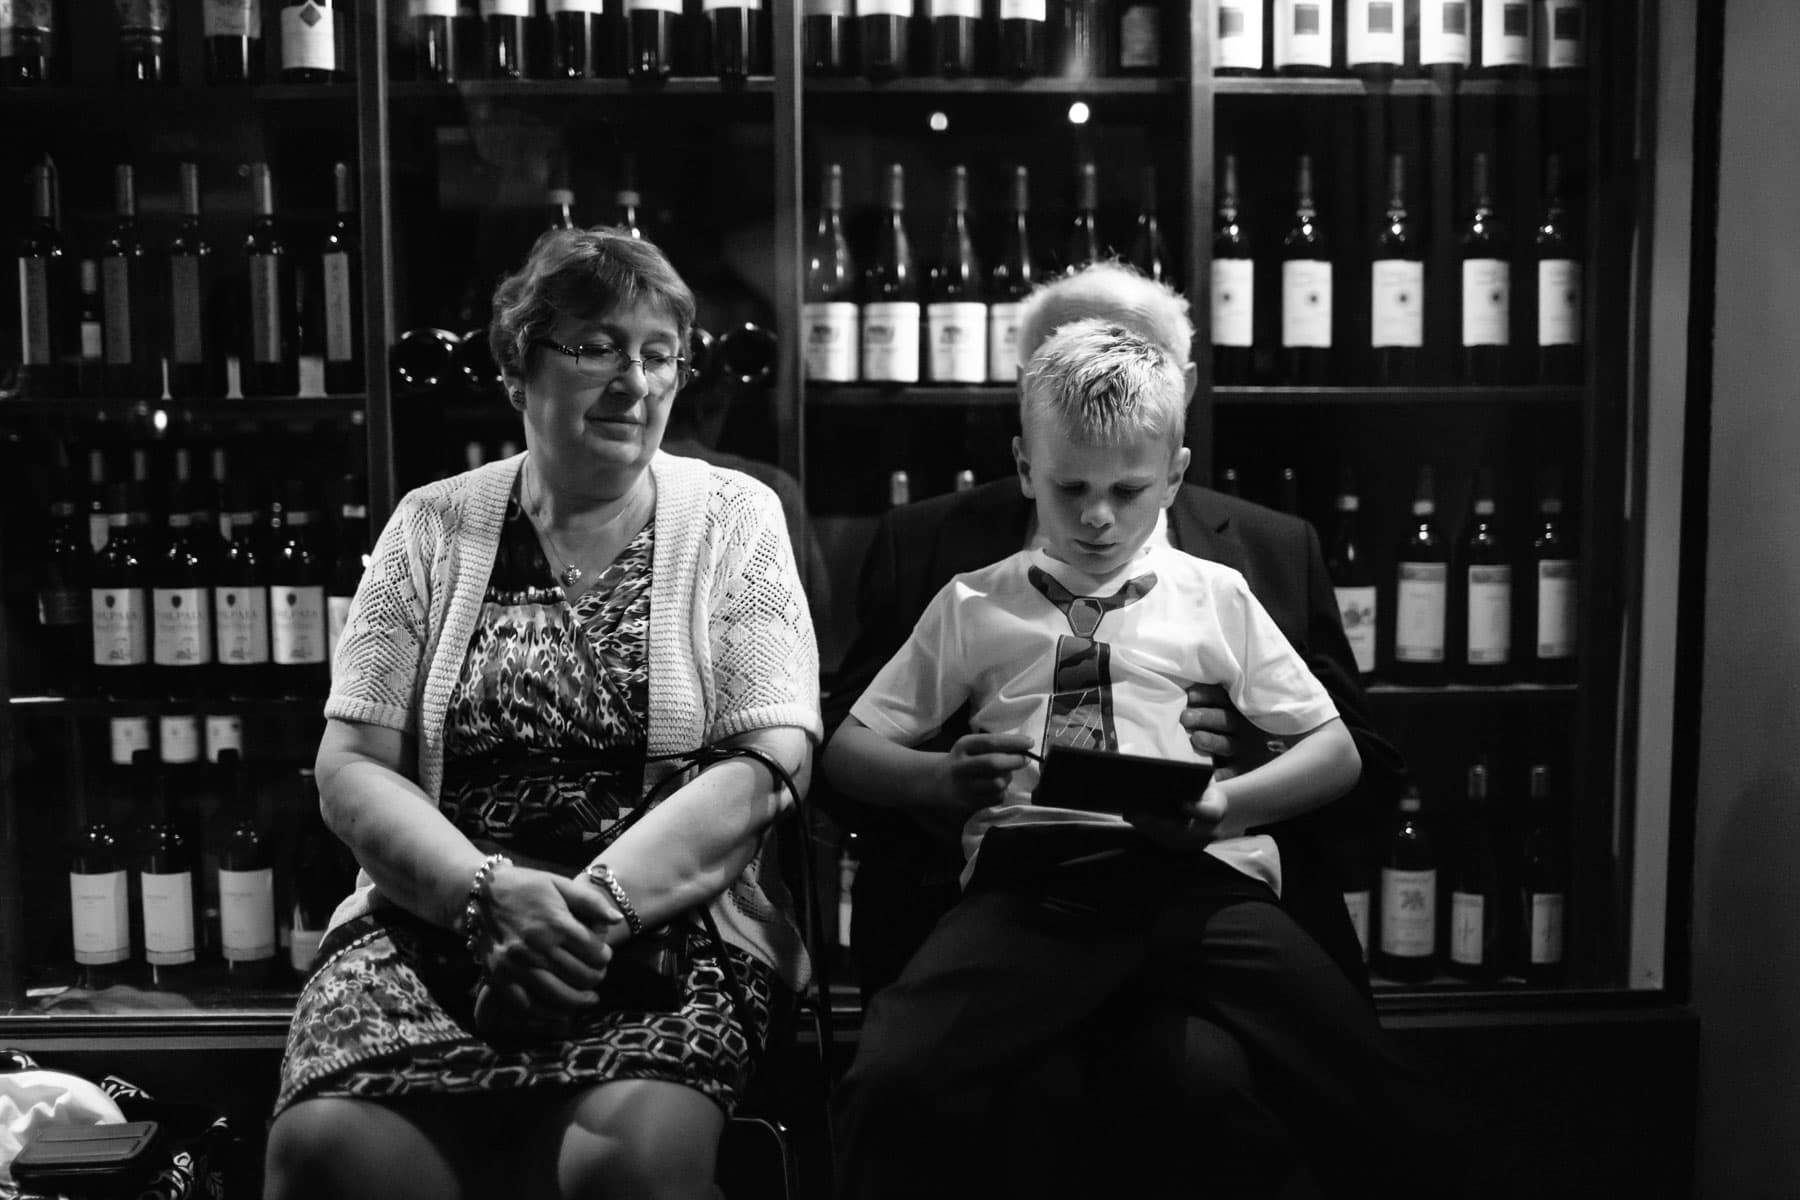 A boy sits on his grandfather's knees, playing video games as his grandmother watches, in the wine cellar of the Splendido Restaurant wedding reception.